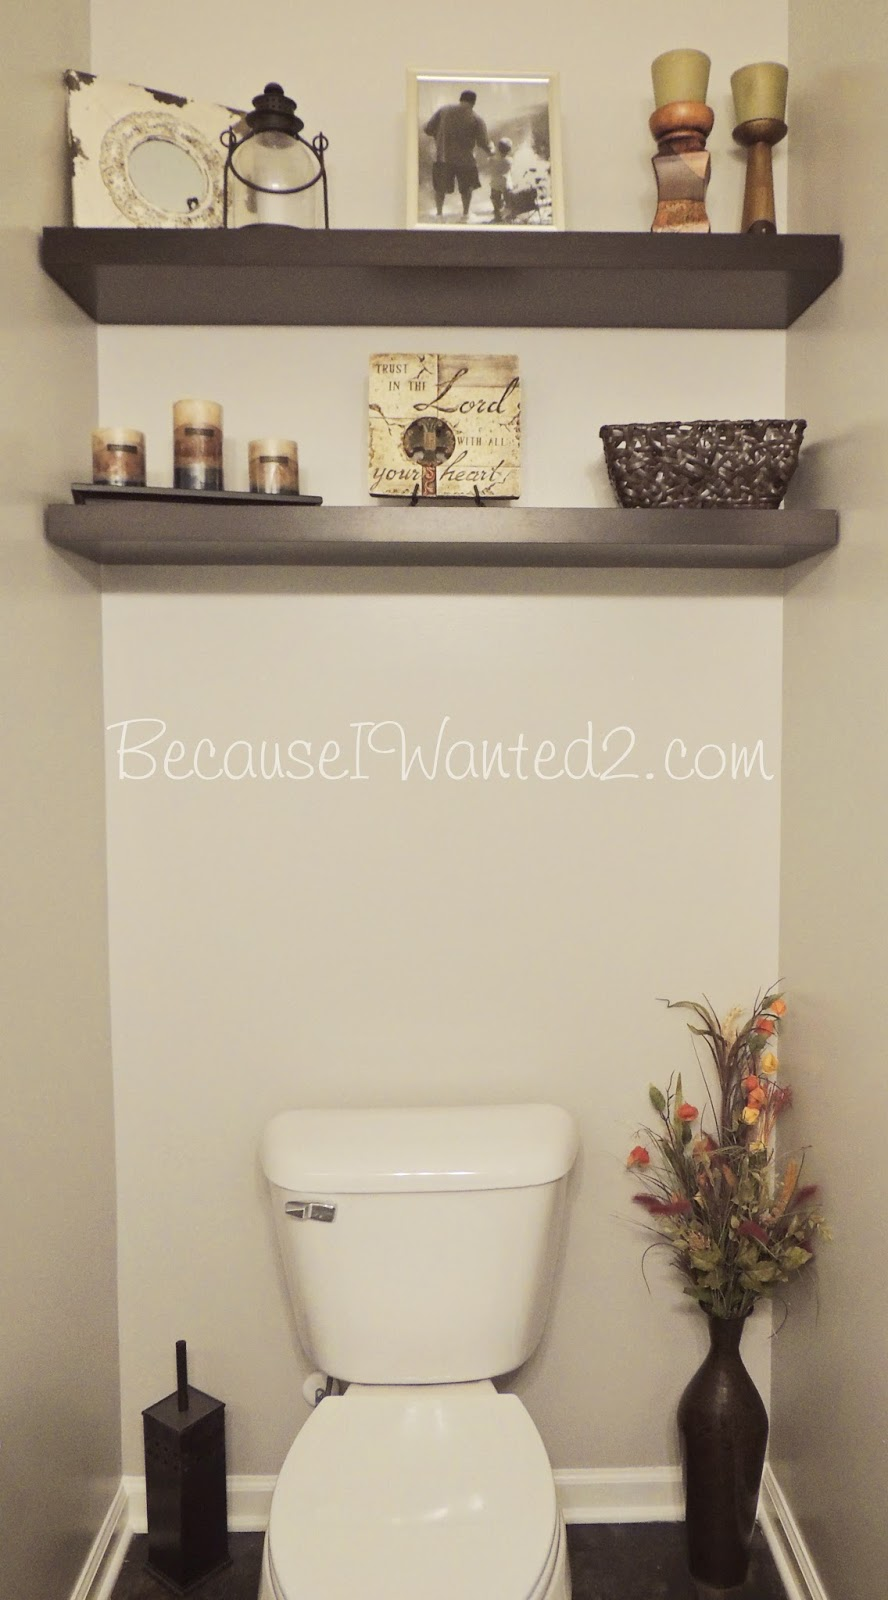 Bricolage e decora o sugest es de decora o para casas for Small 1 2 bathroom decorating ideas